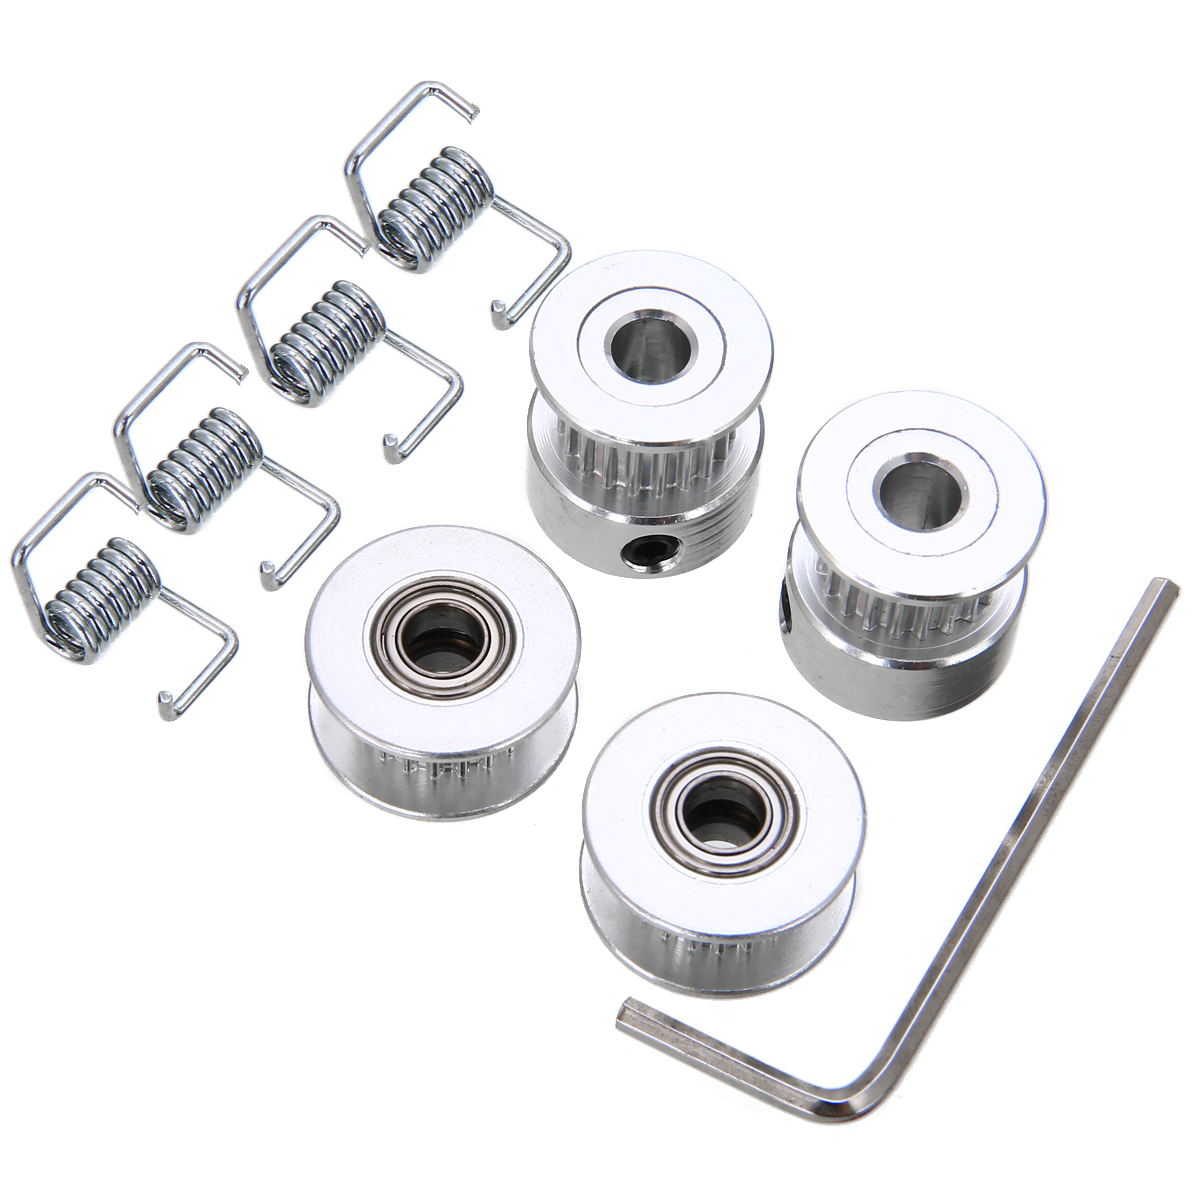 Smooth Idler Pulley With bore 5mm Bearing For width 6.5mm GT2 Timing belt